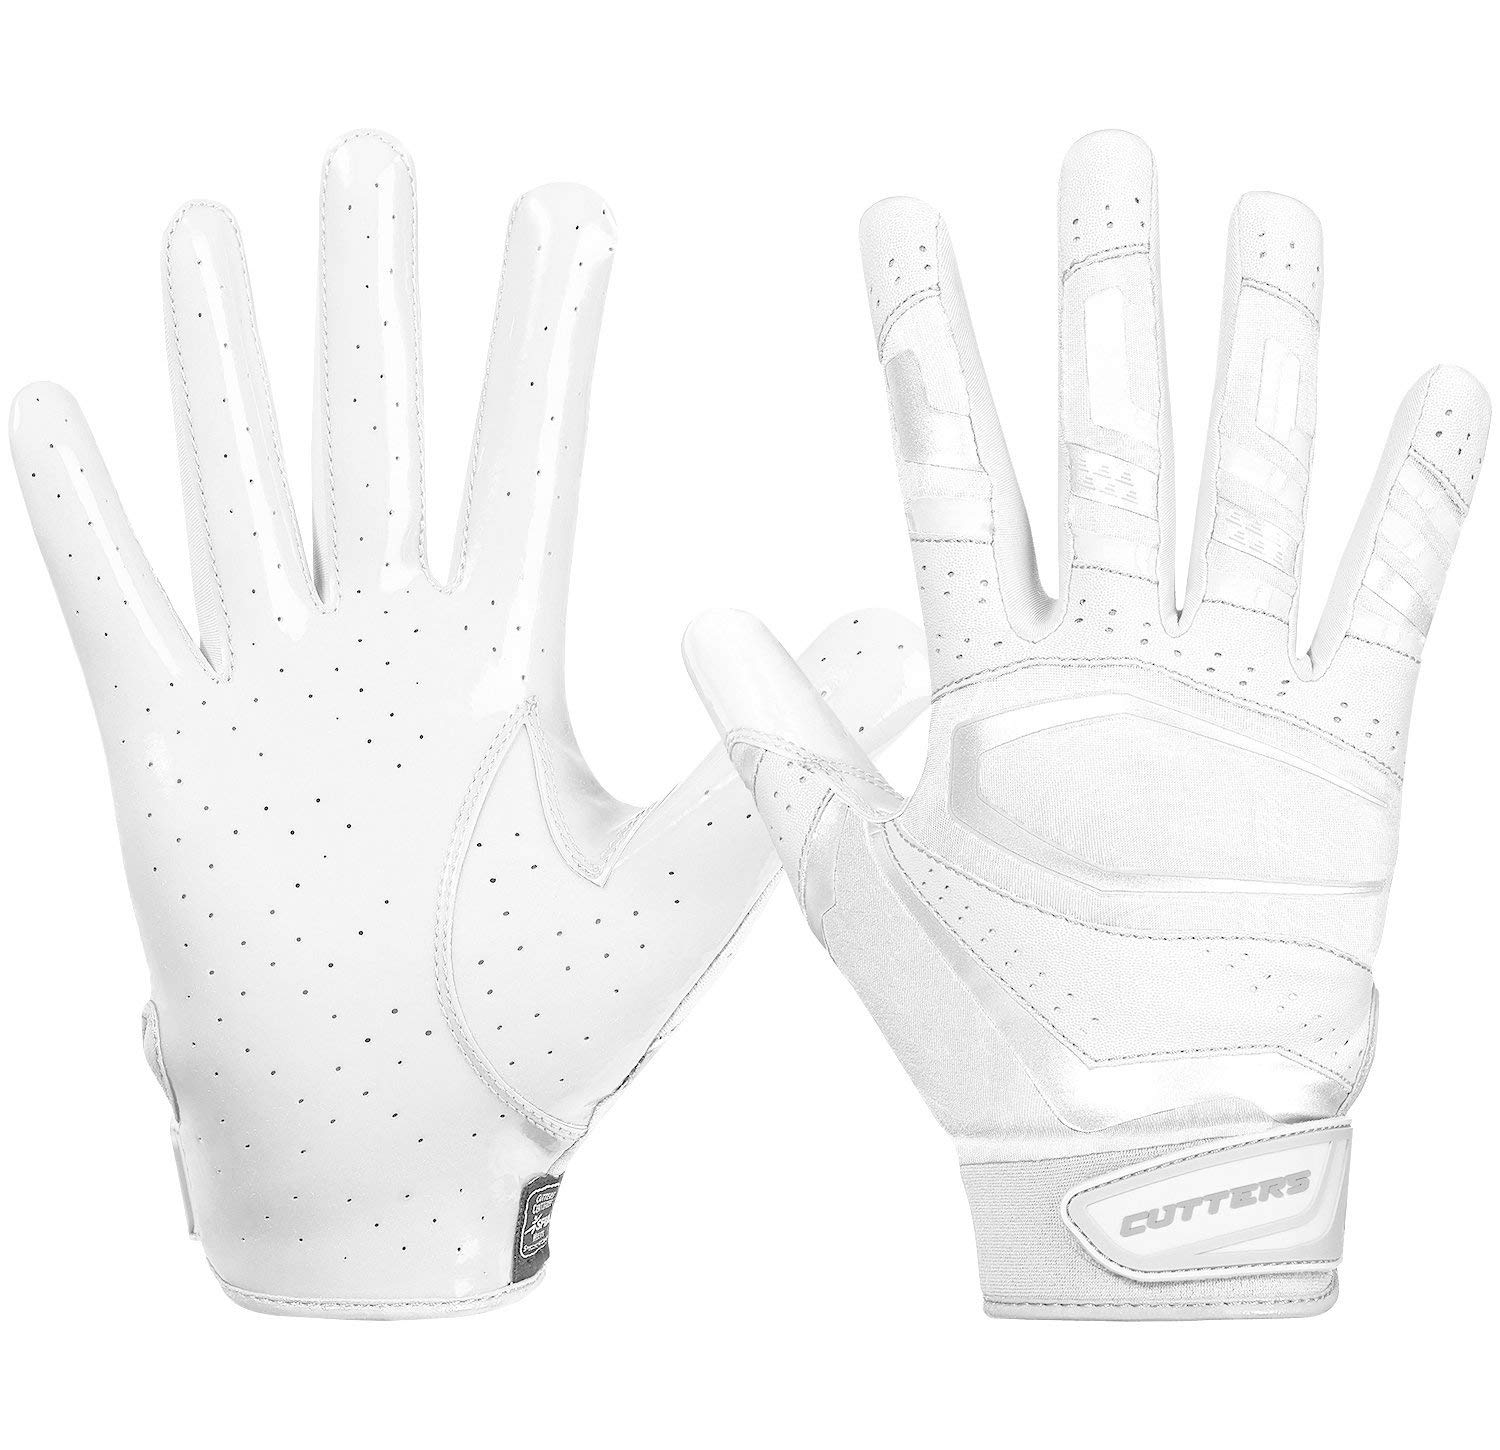 Cutters Gloves Solid White Large